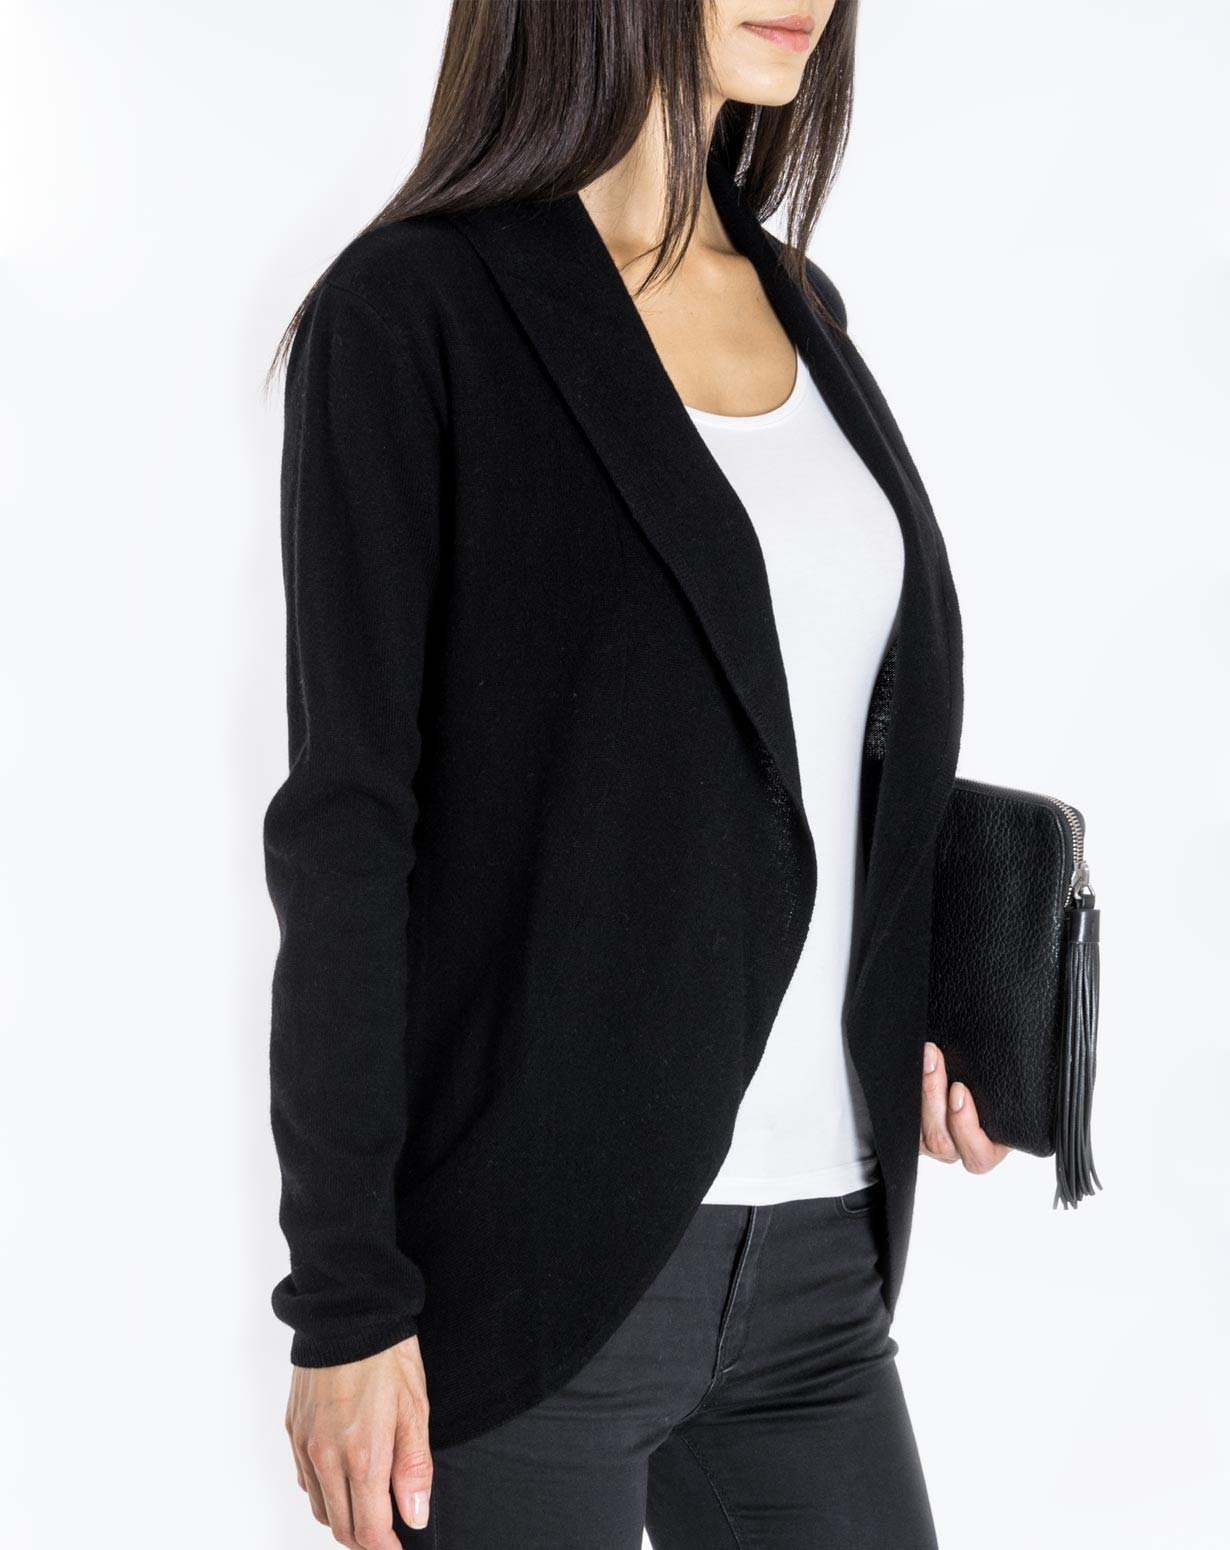 Women's Pure Cashmere Cardigan Jacket